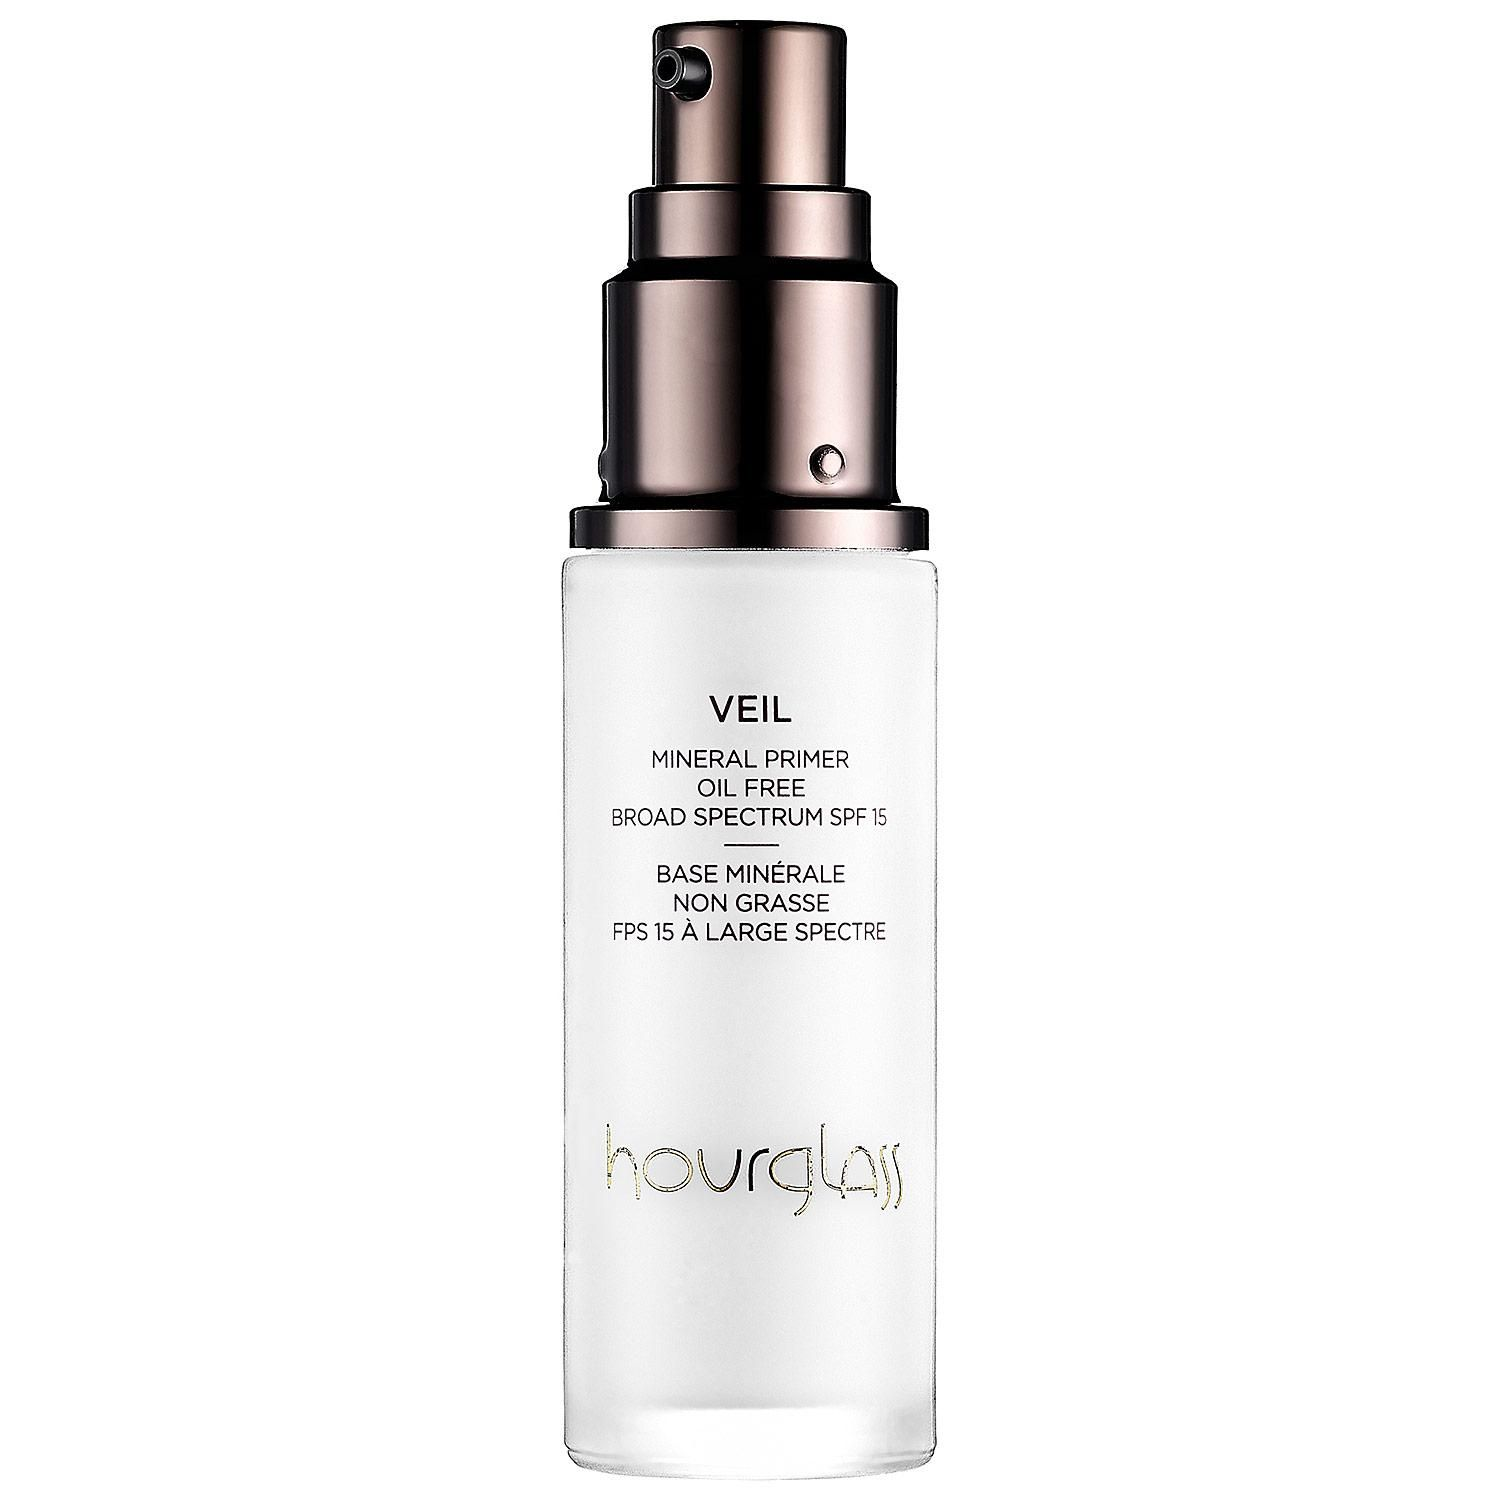 Get The No Makeup Makeup Look With Hourglass Veil Mineral Primer